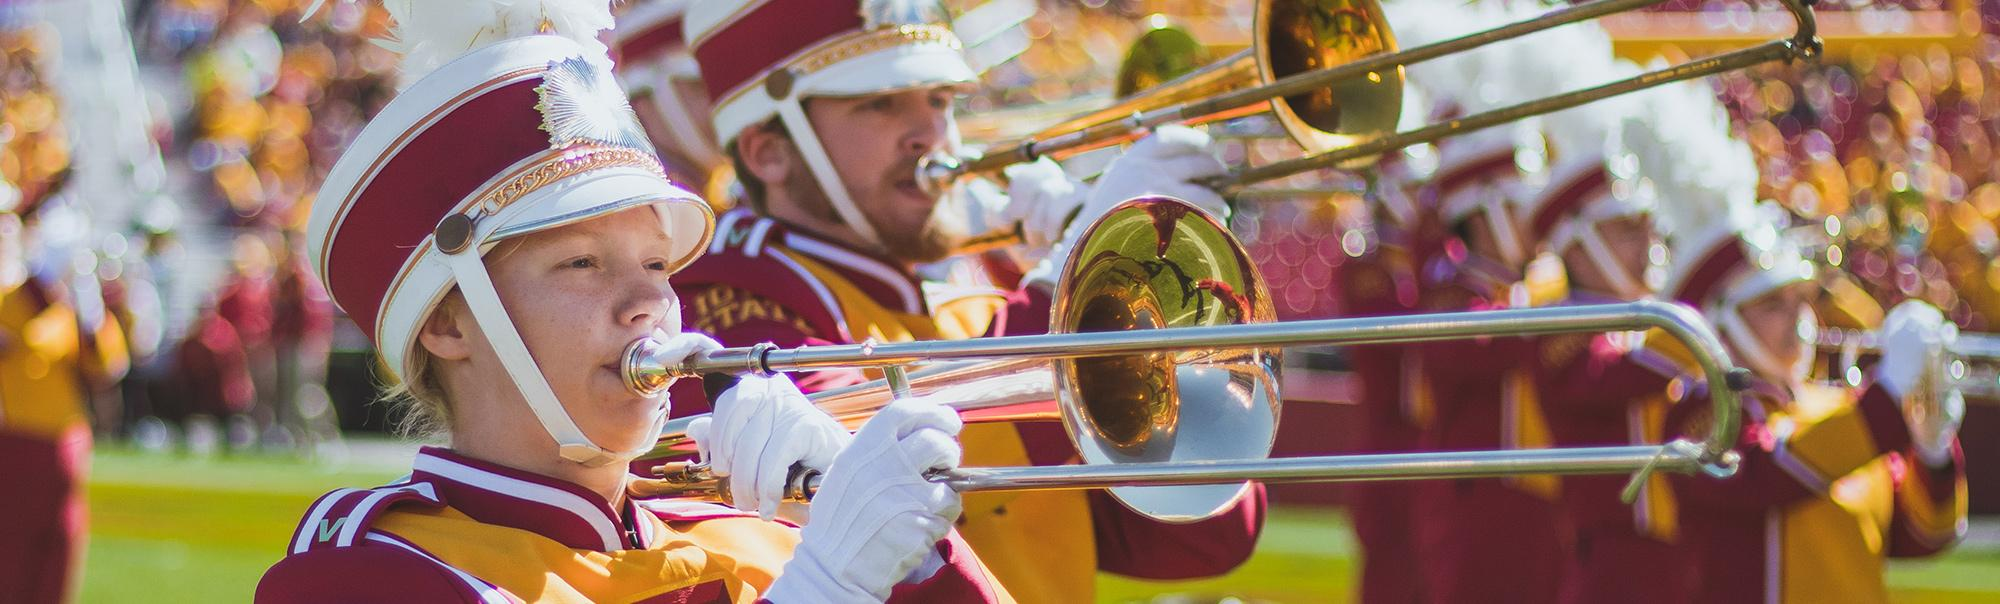 closeup photo of marching band trombone players.